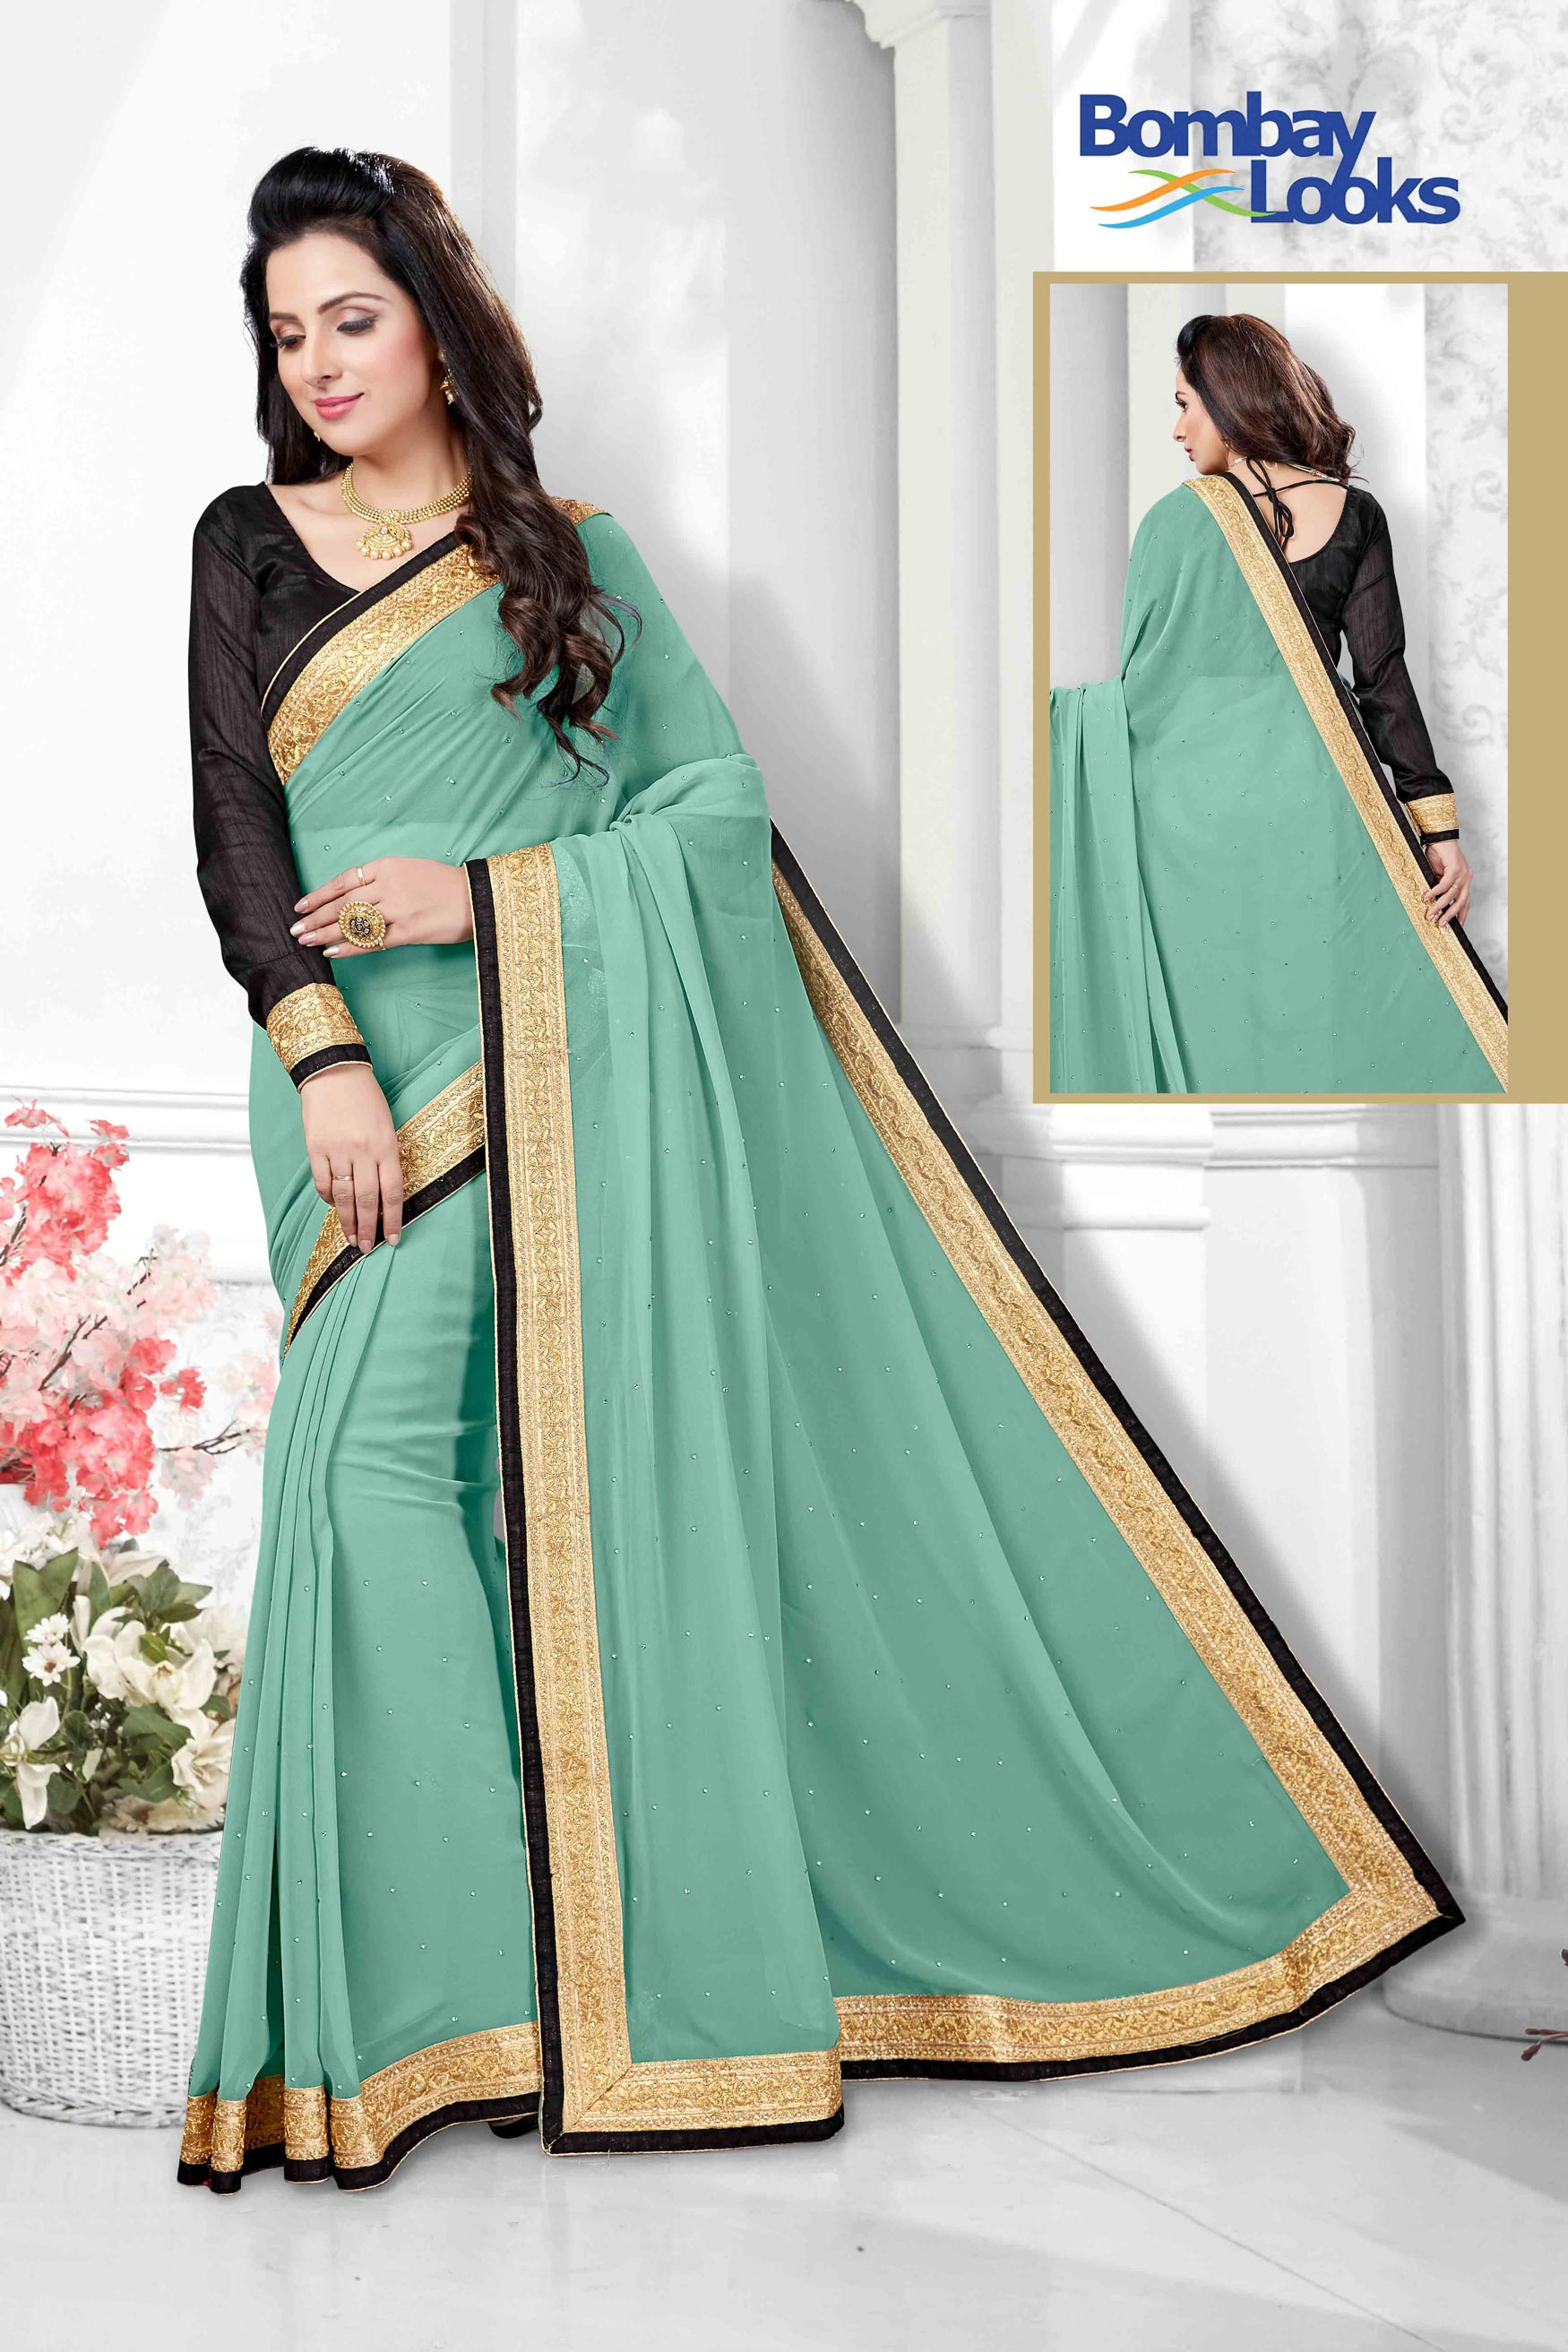 Classic jade georgette saree with elegant gold border